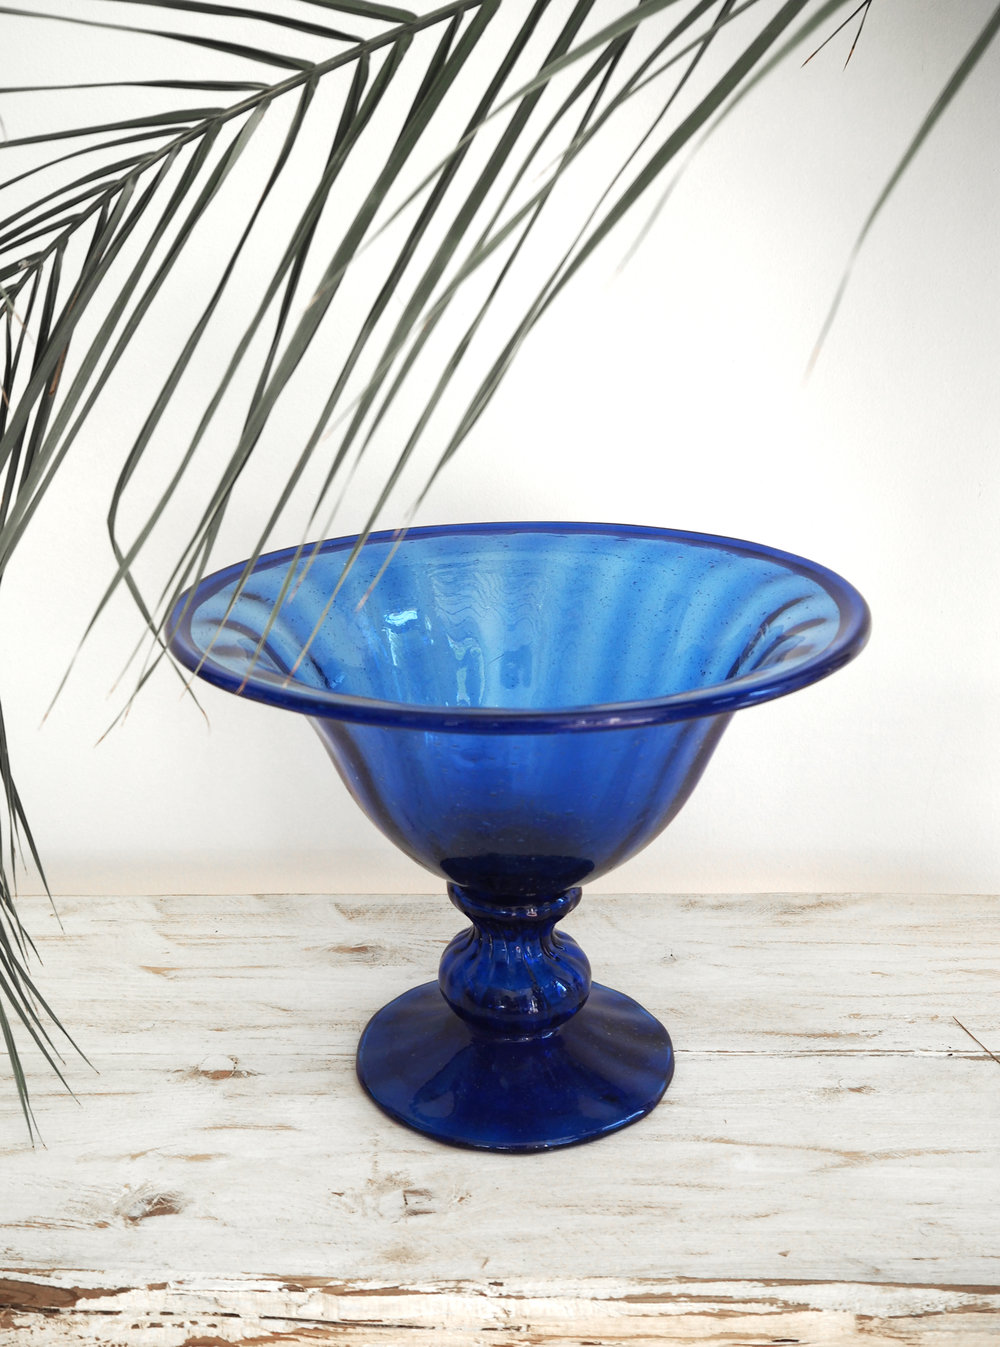 deguayhaus-products-gordiola-fruitbowl